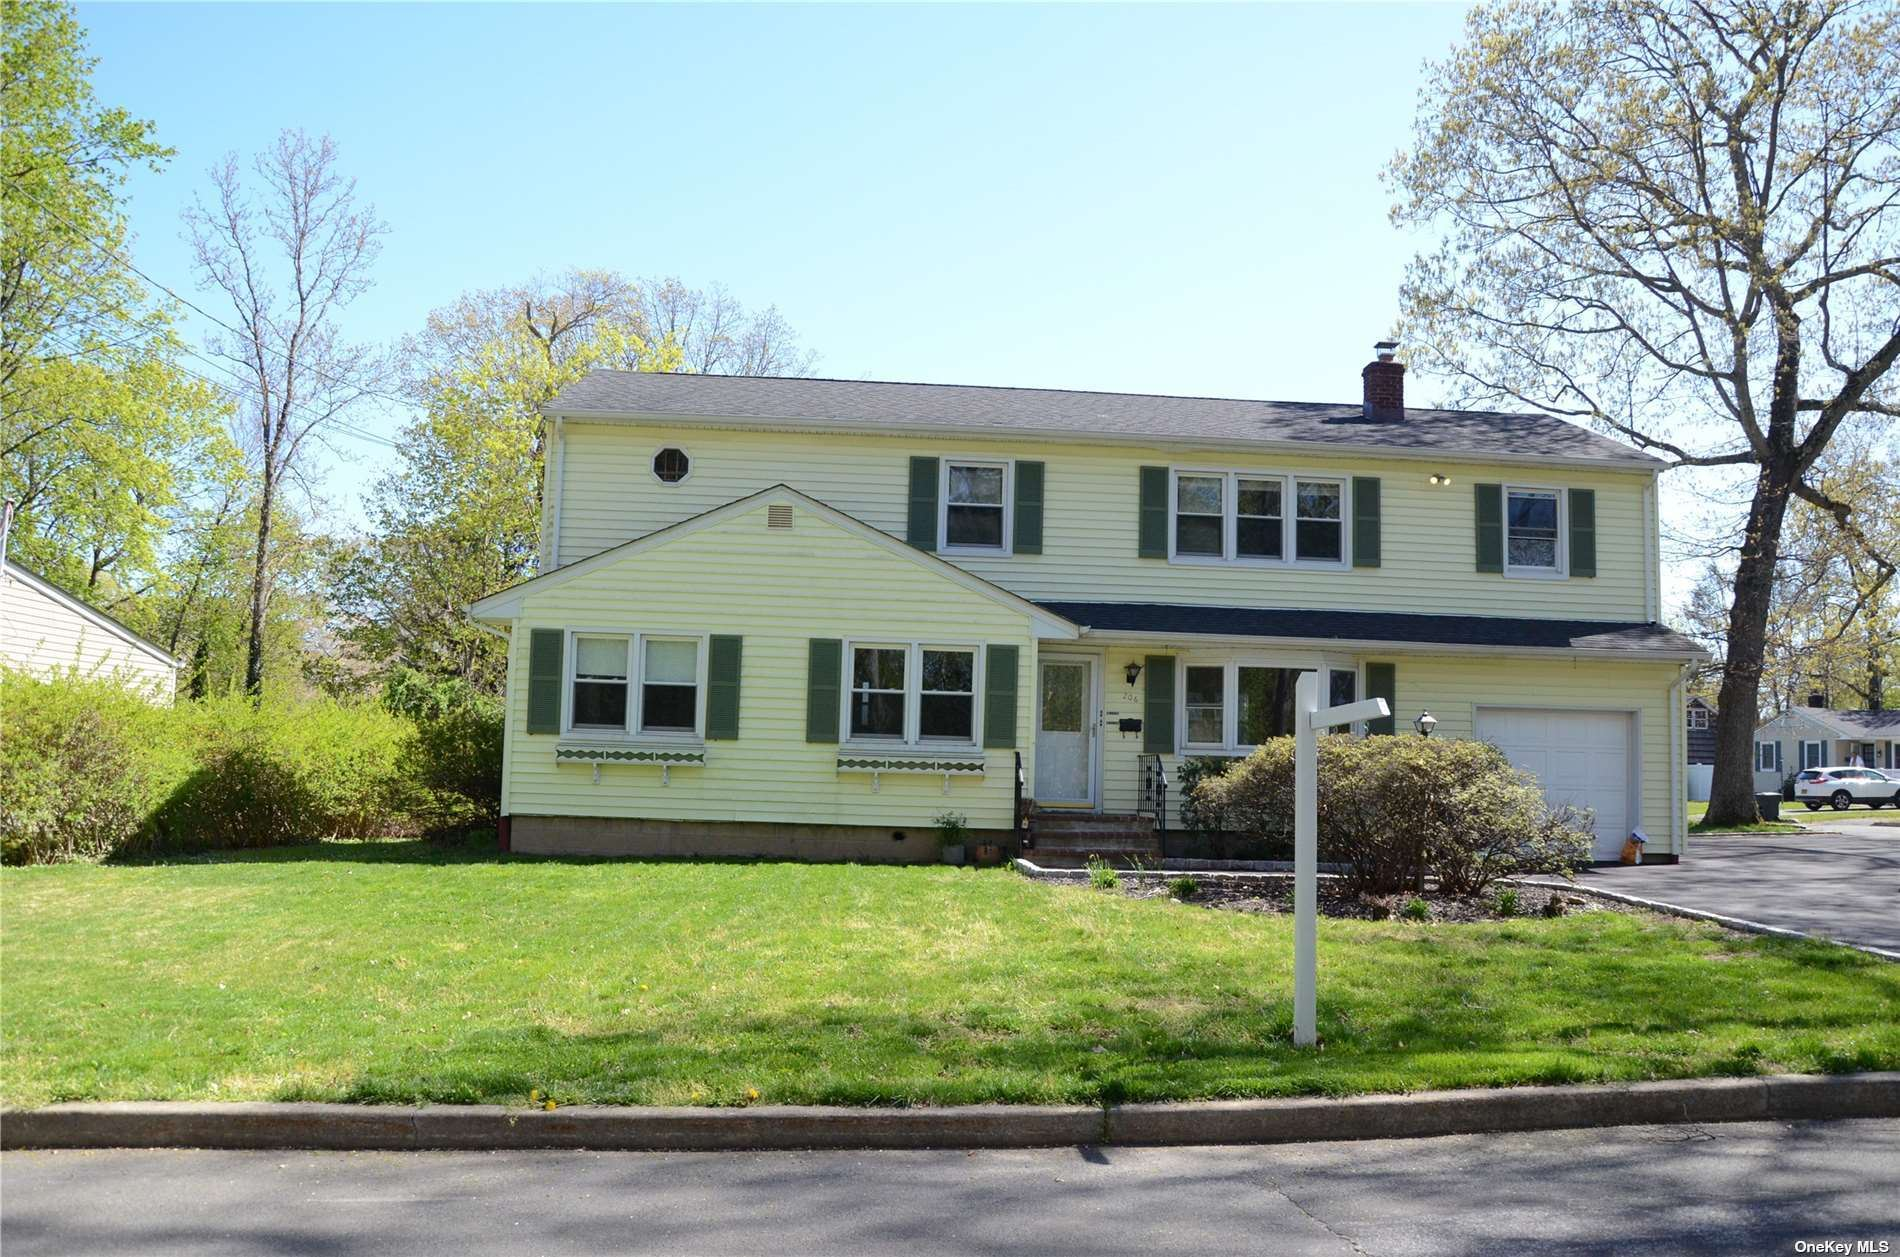 206 3rd Street, Saint James, NY 11780 - MLS#: 3298516